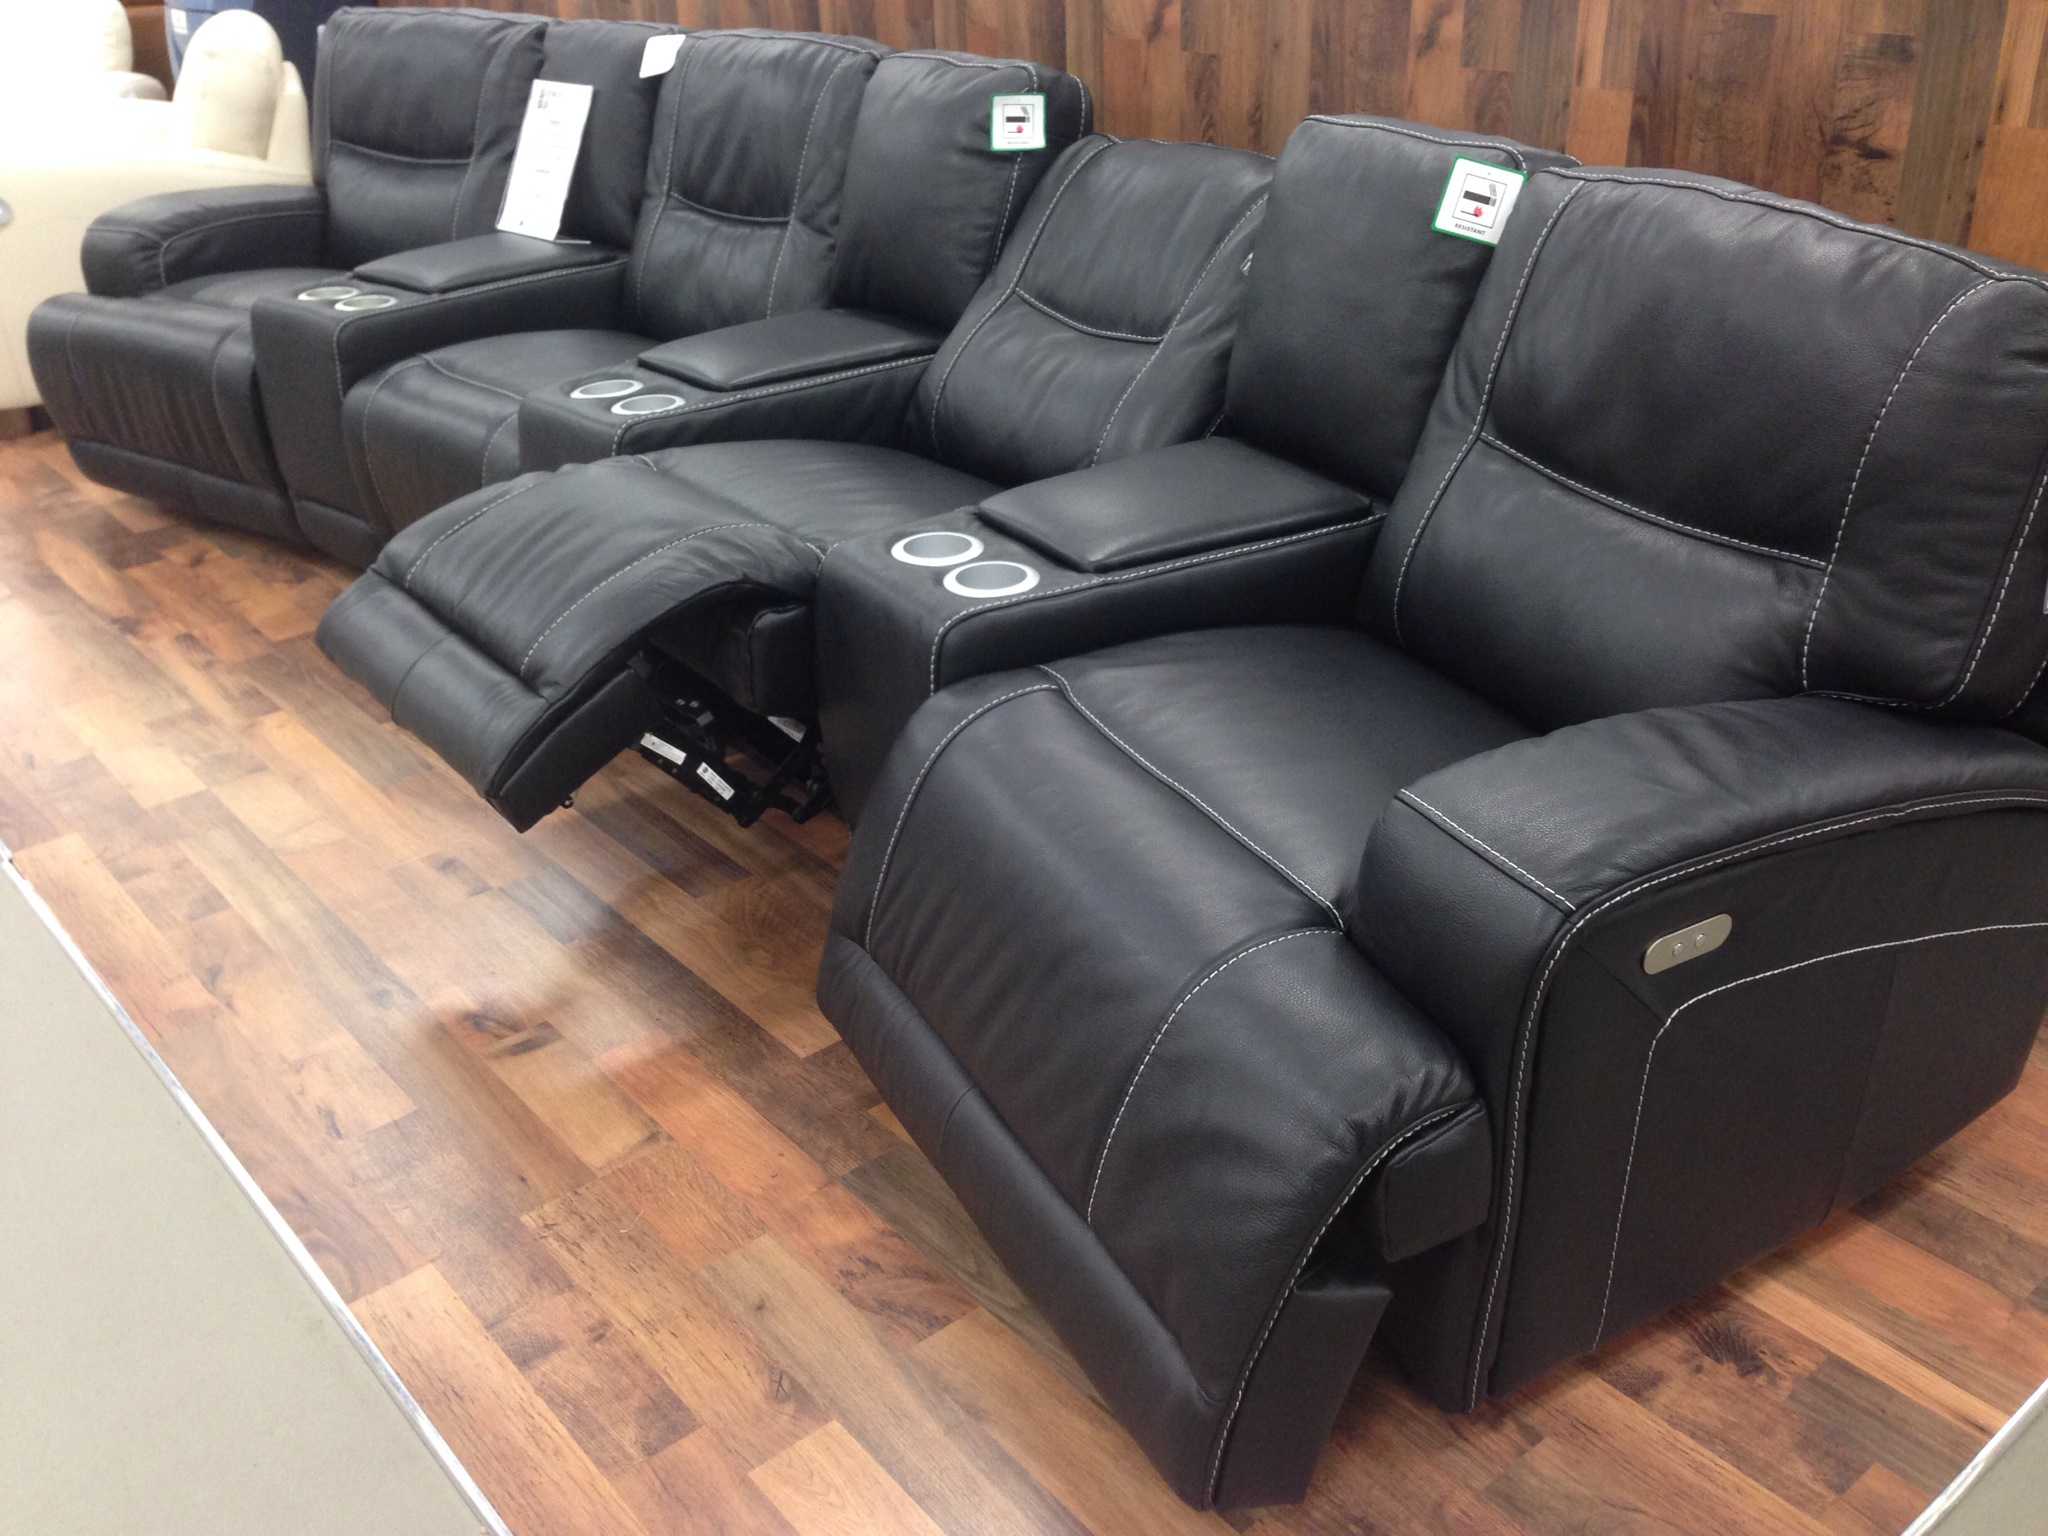 sofa beds blackburn manwah power recliner natuzzi cinema seating new and exclusive to furnimax